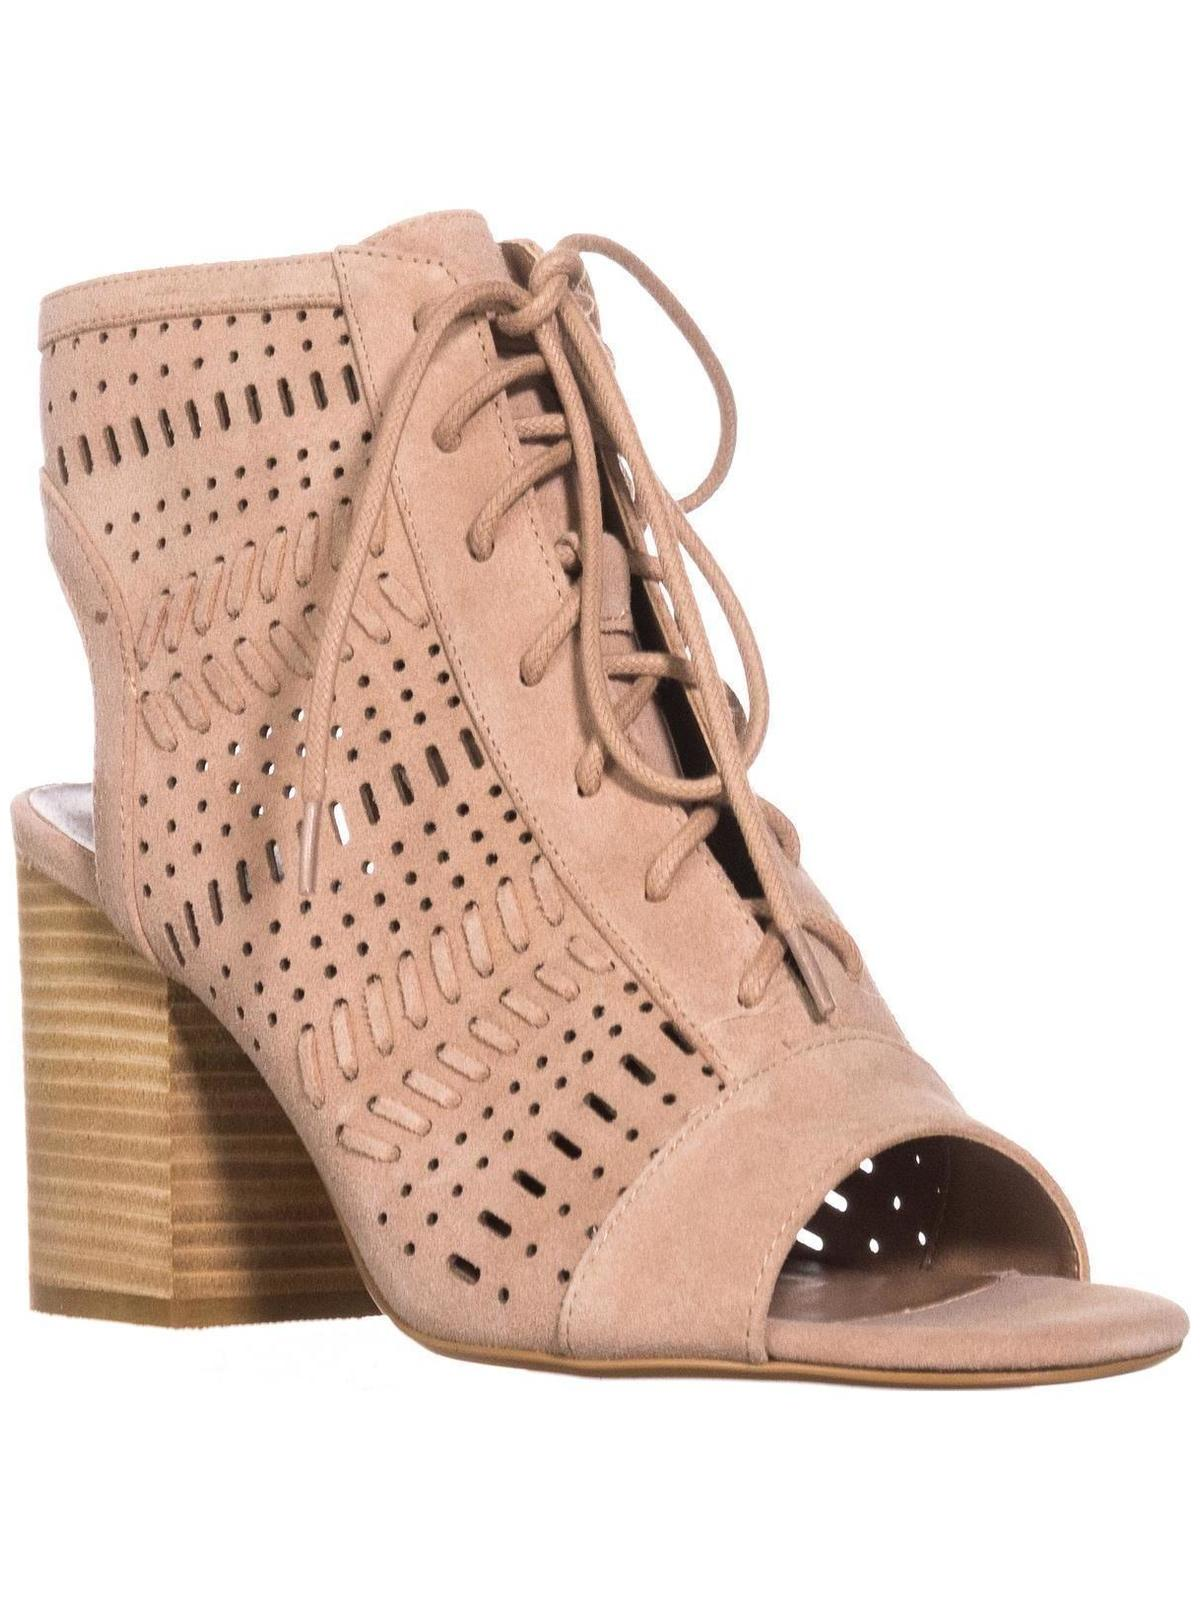 Womens Steve Madden Gavell Lace Up Heeled Sandals, Camel Suede